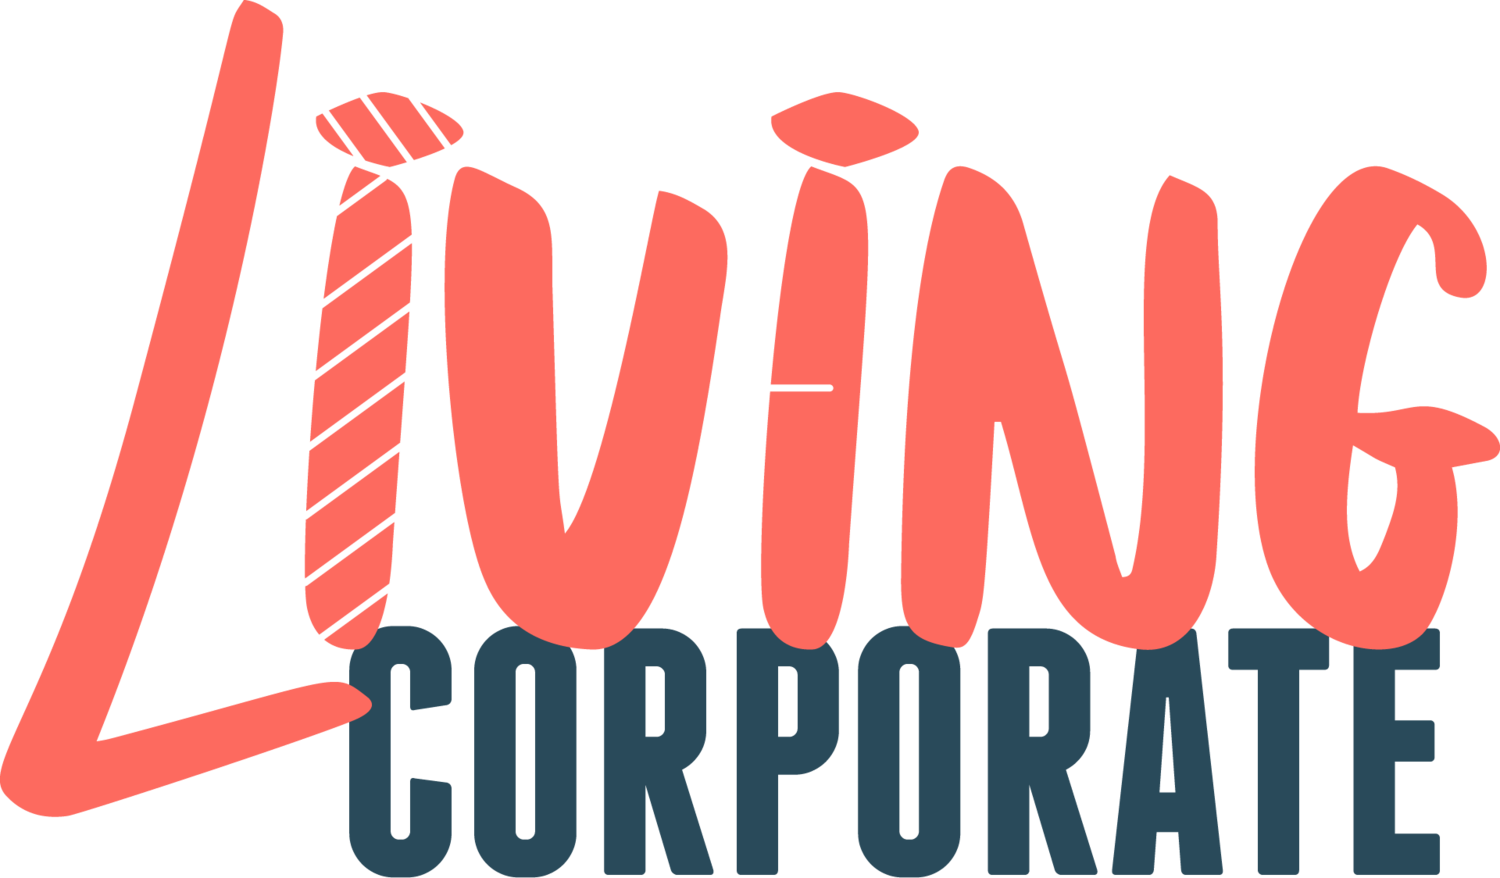 ABOUT - Living Corporate